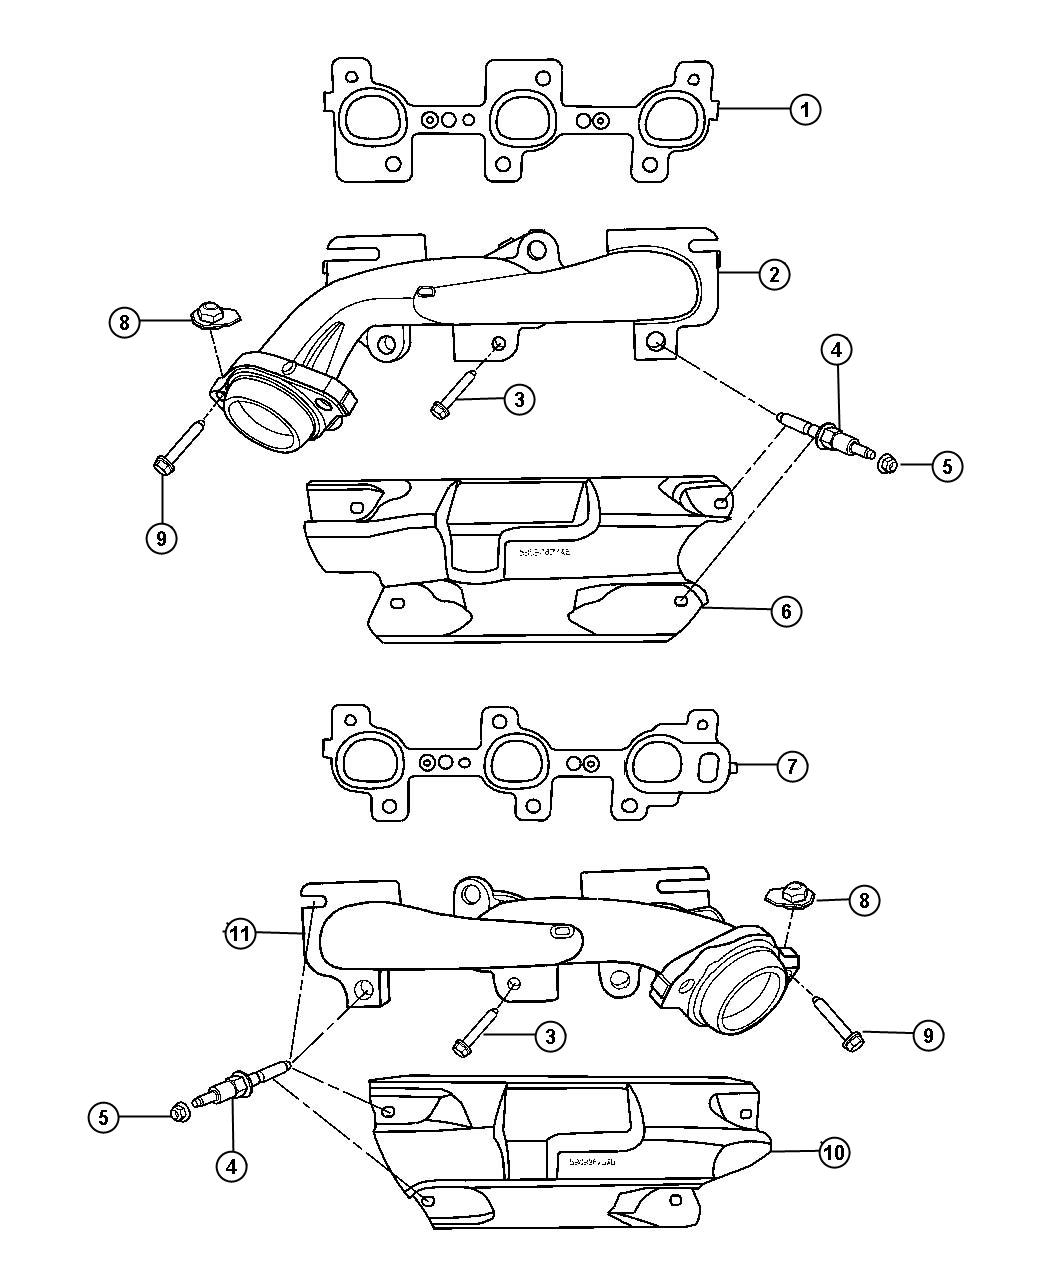 Jeep Grand Cherokee Manifold Exhaust Right Side